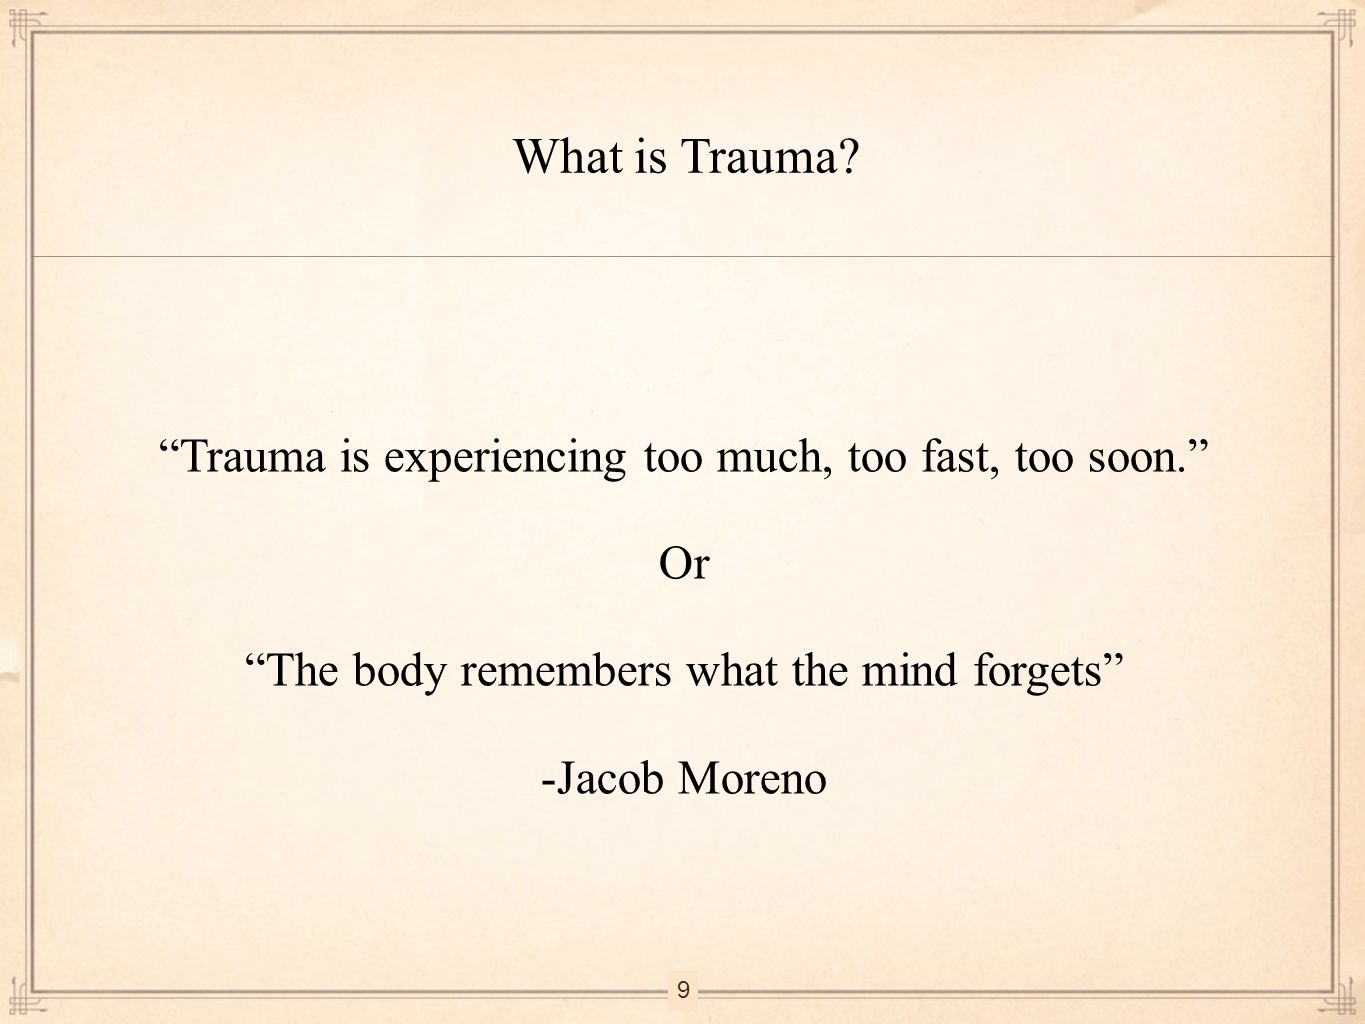 What is Trauma Trauma is experiencing too much, too fast, too soon.